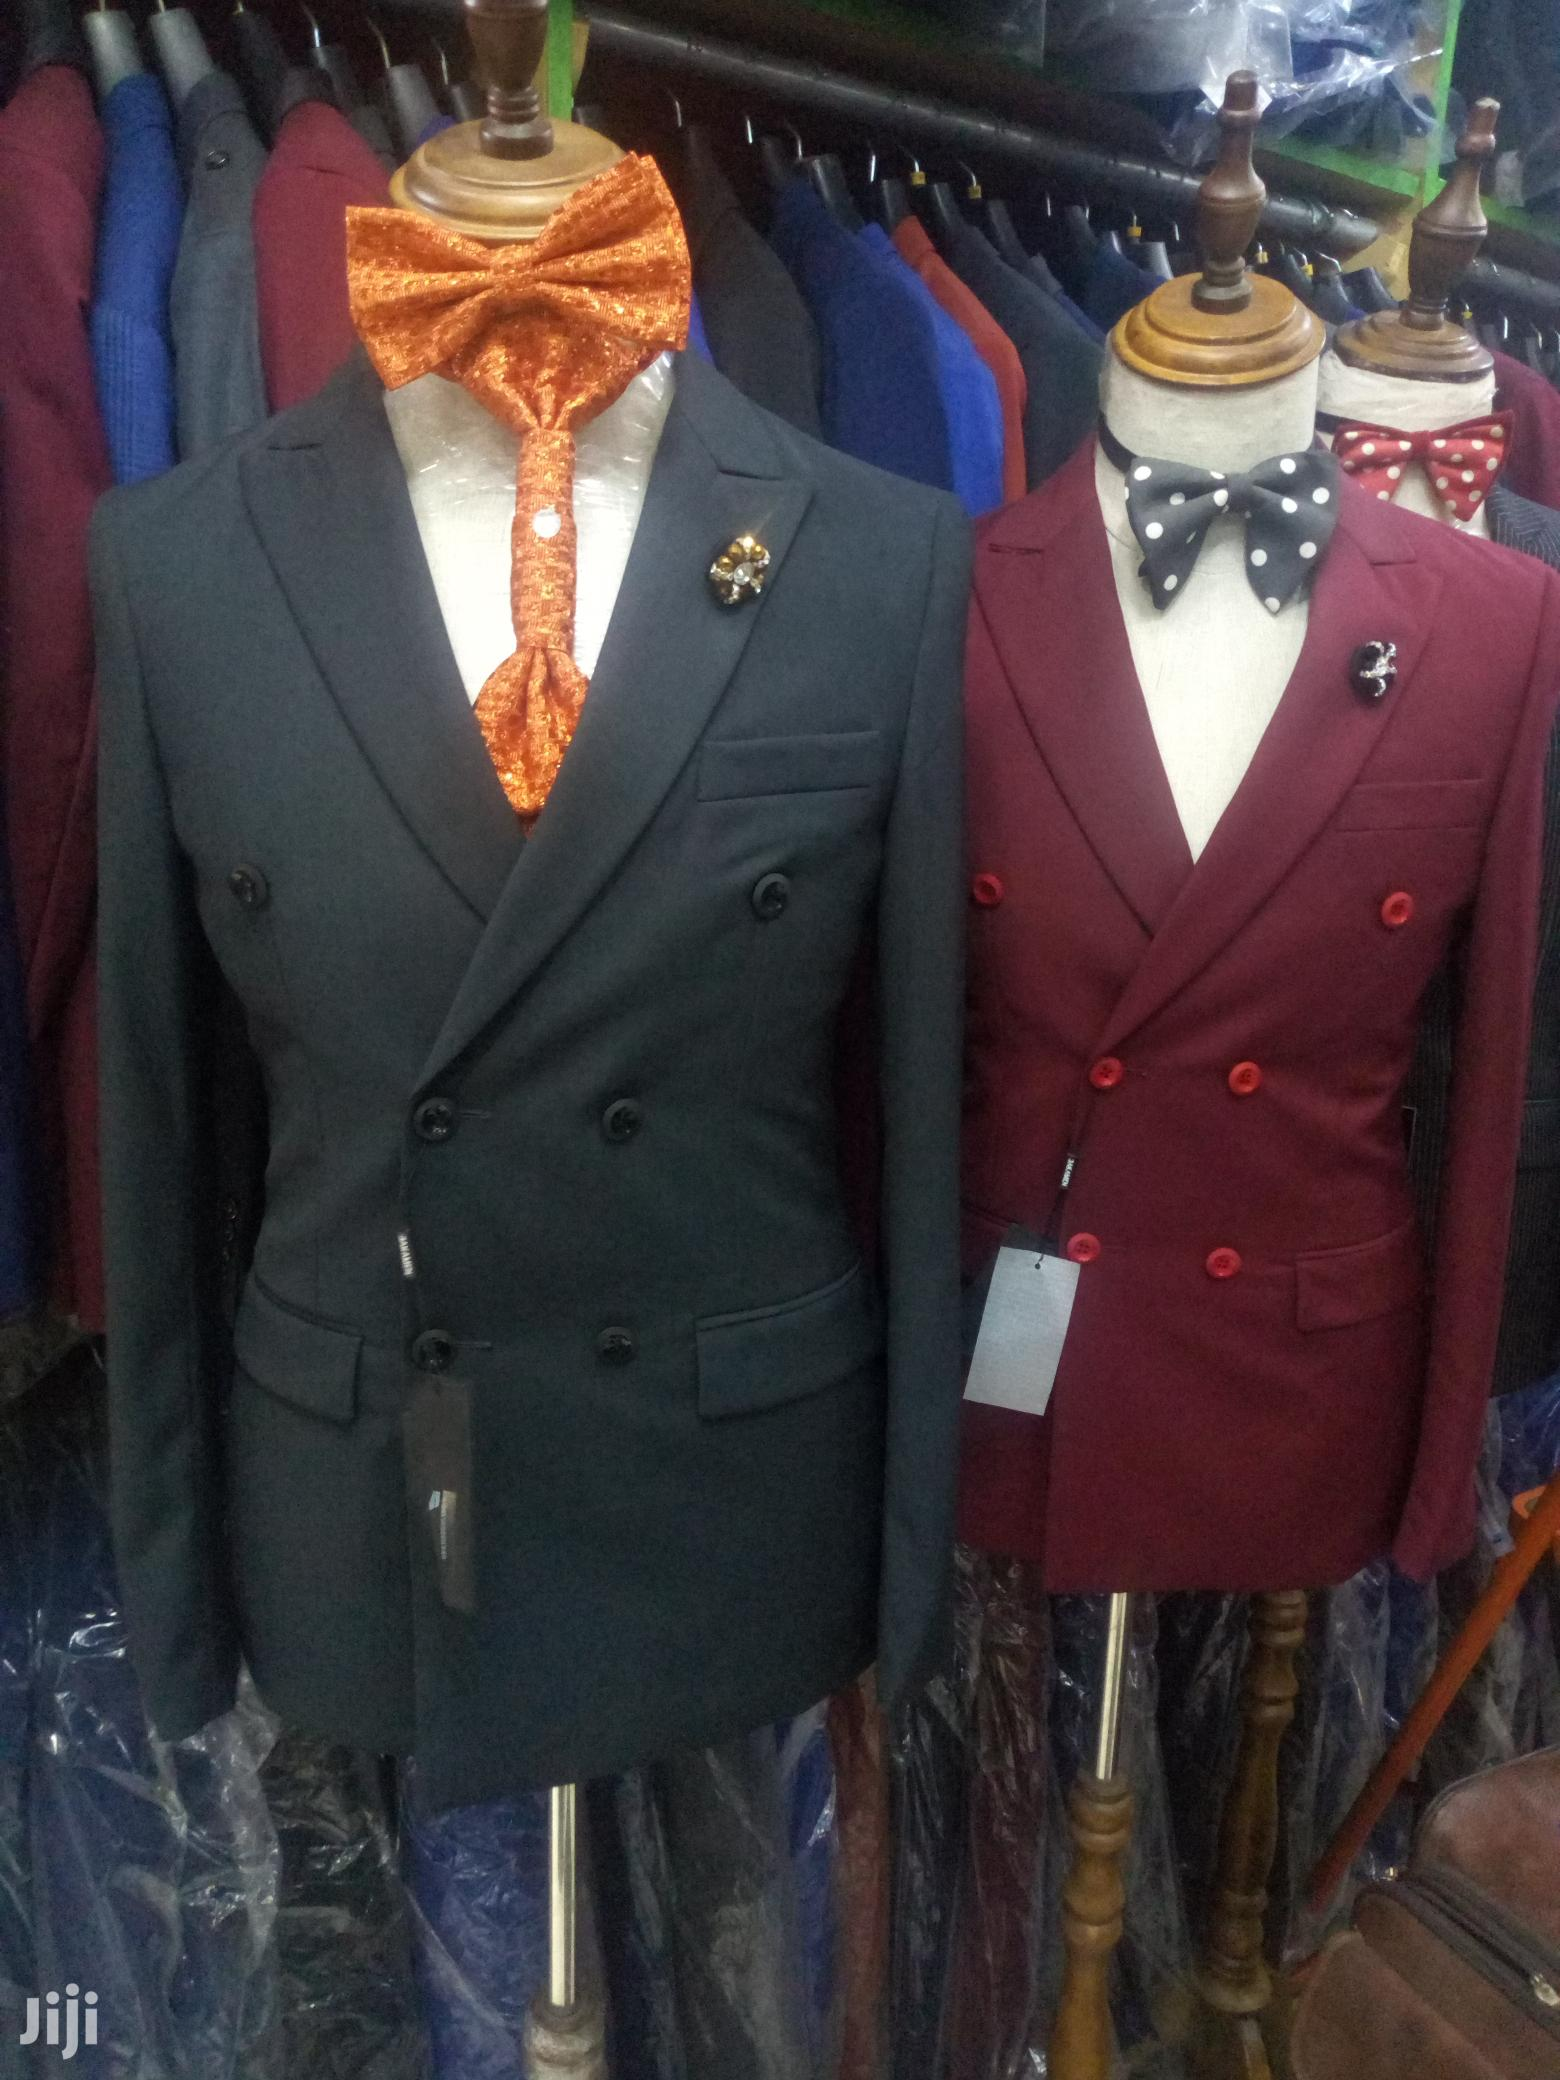 Double Breasted Suits For Men's Wedding Outfits   Wedding Wear & Accessories for sale in Lagos Island (Eko), Lagos State, Nigeria